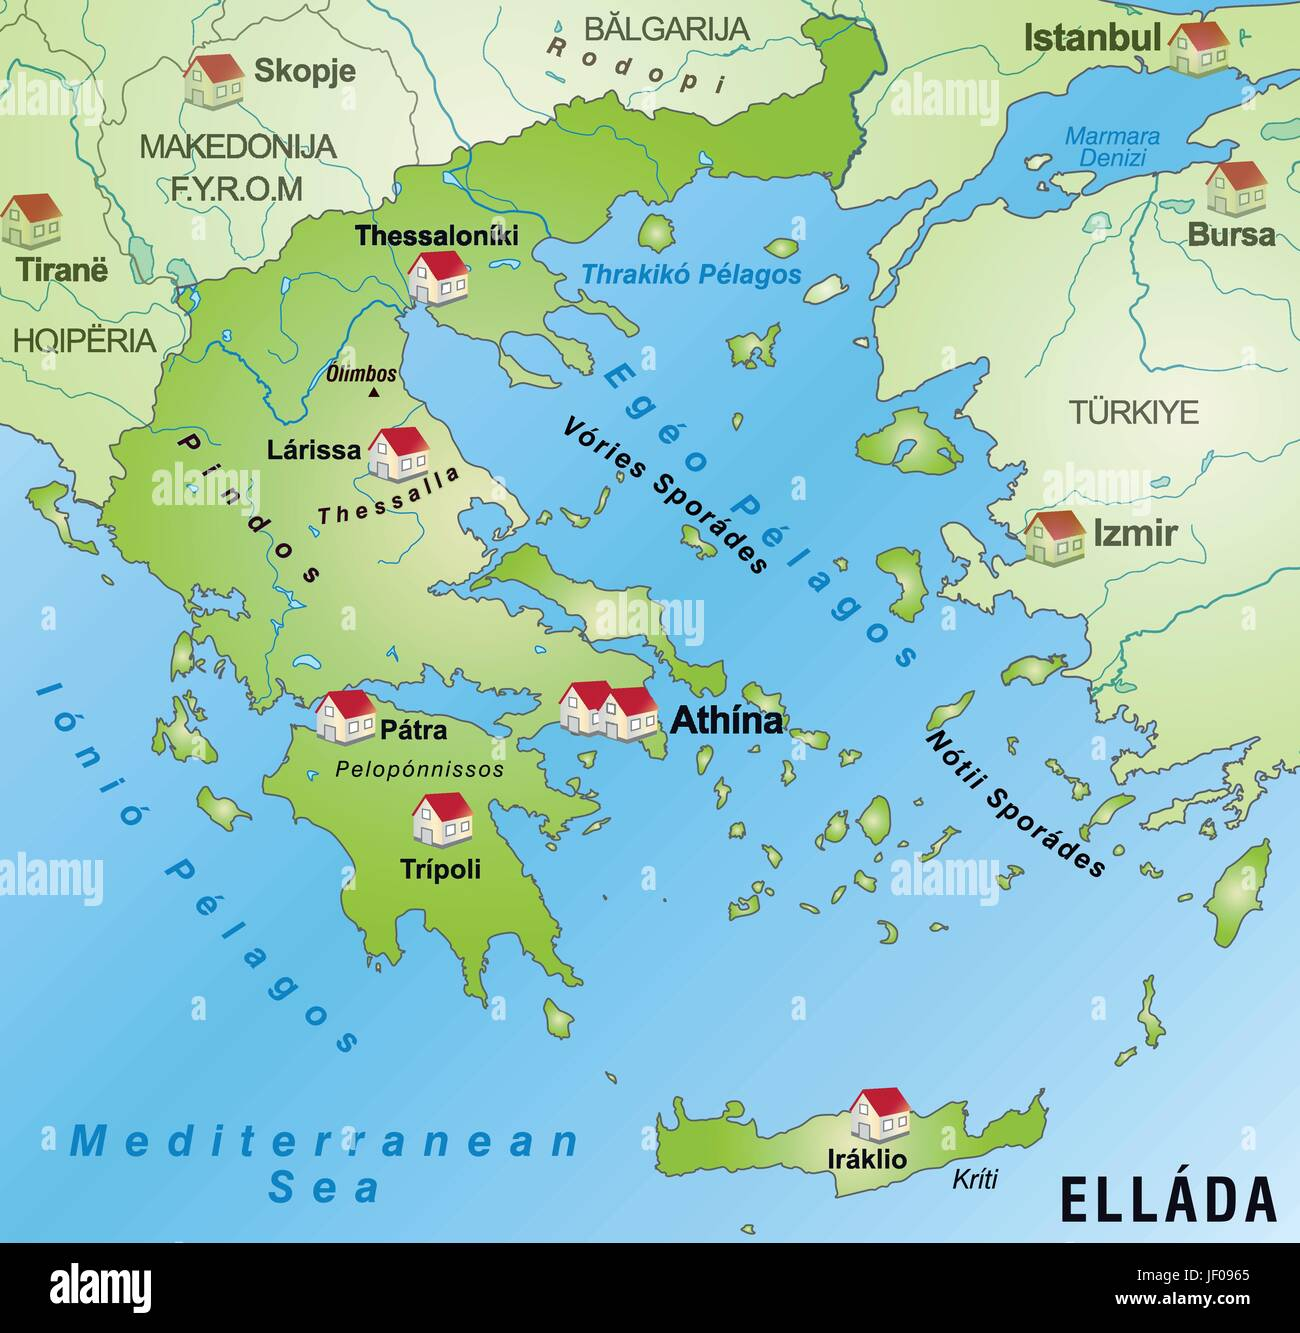 greece, border, card, synopsis, borders, atlas, map of the world ...